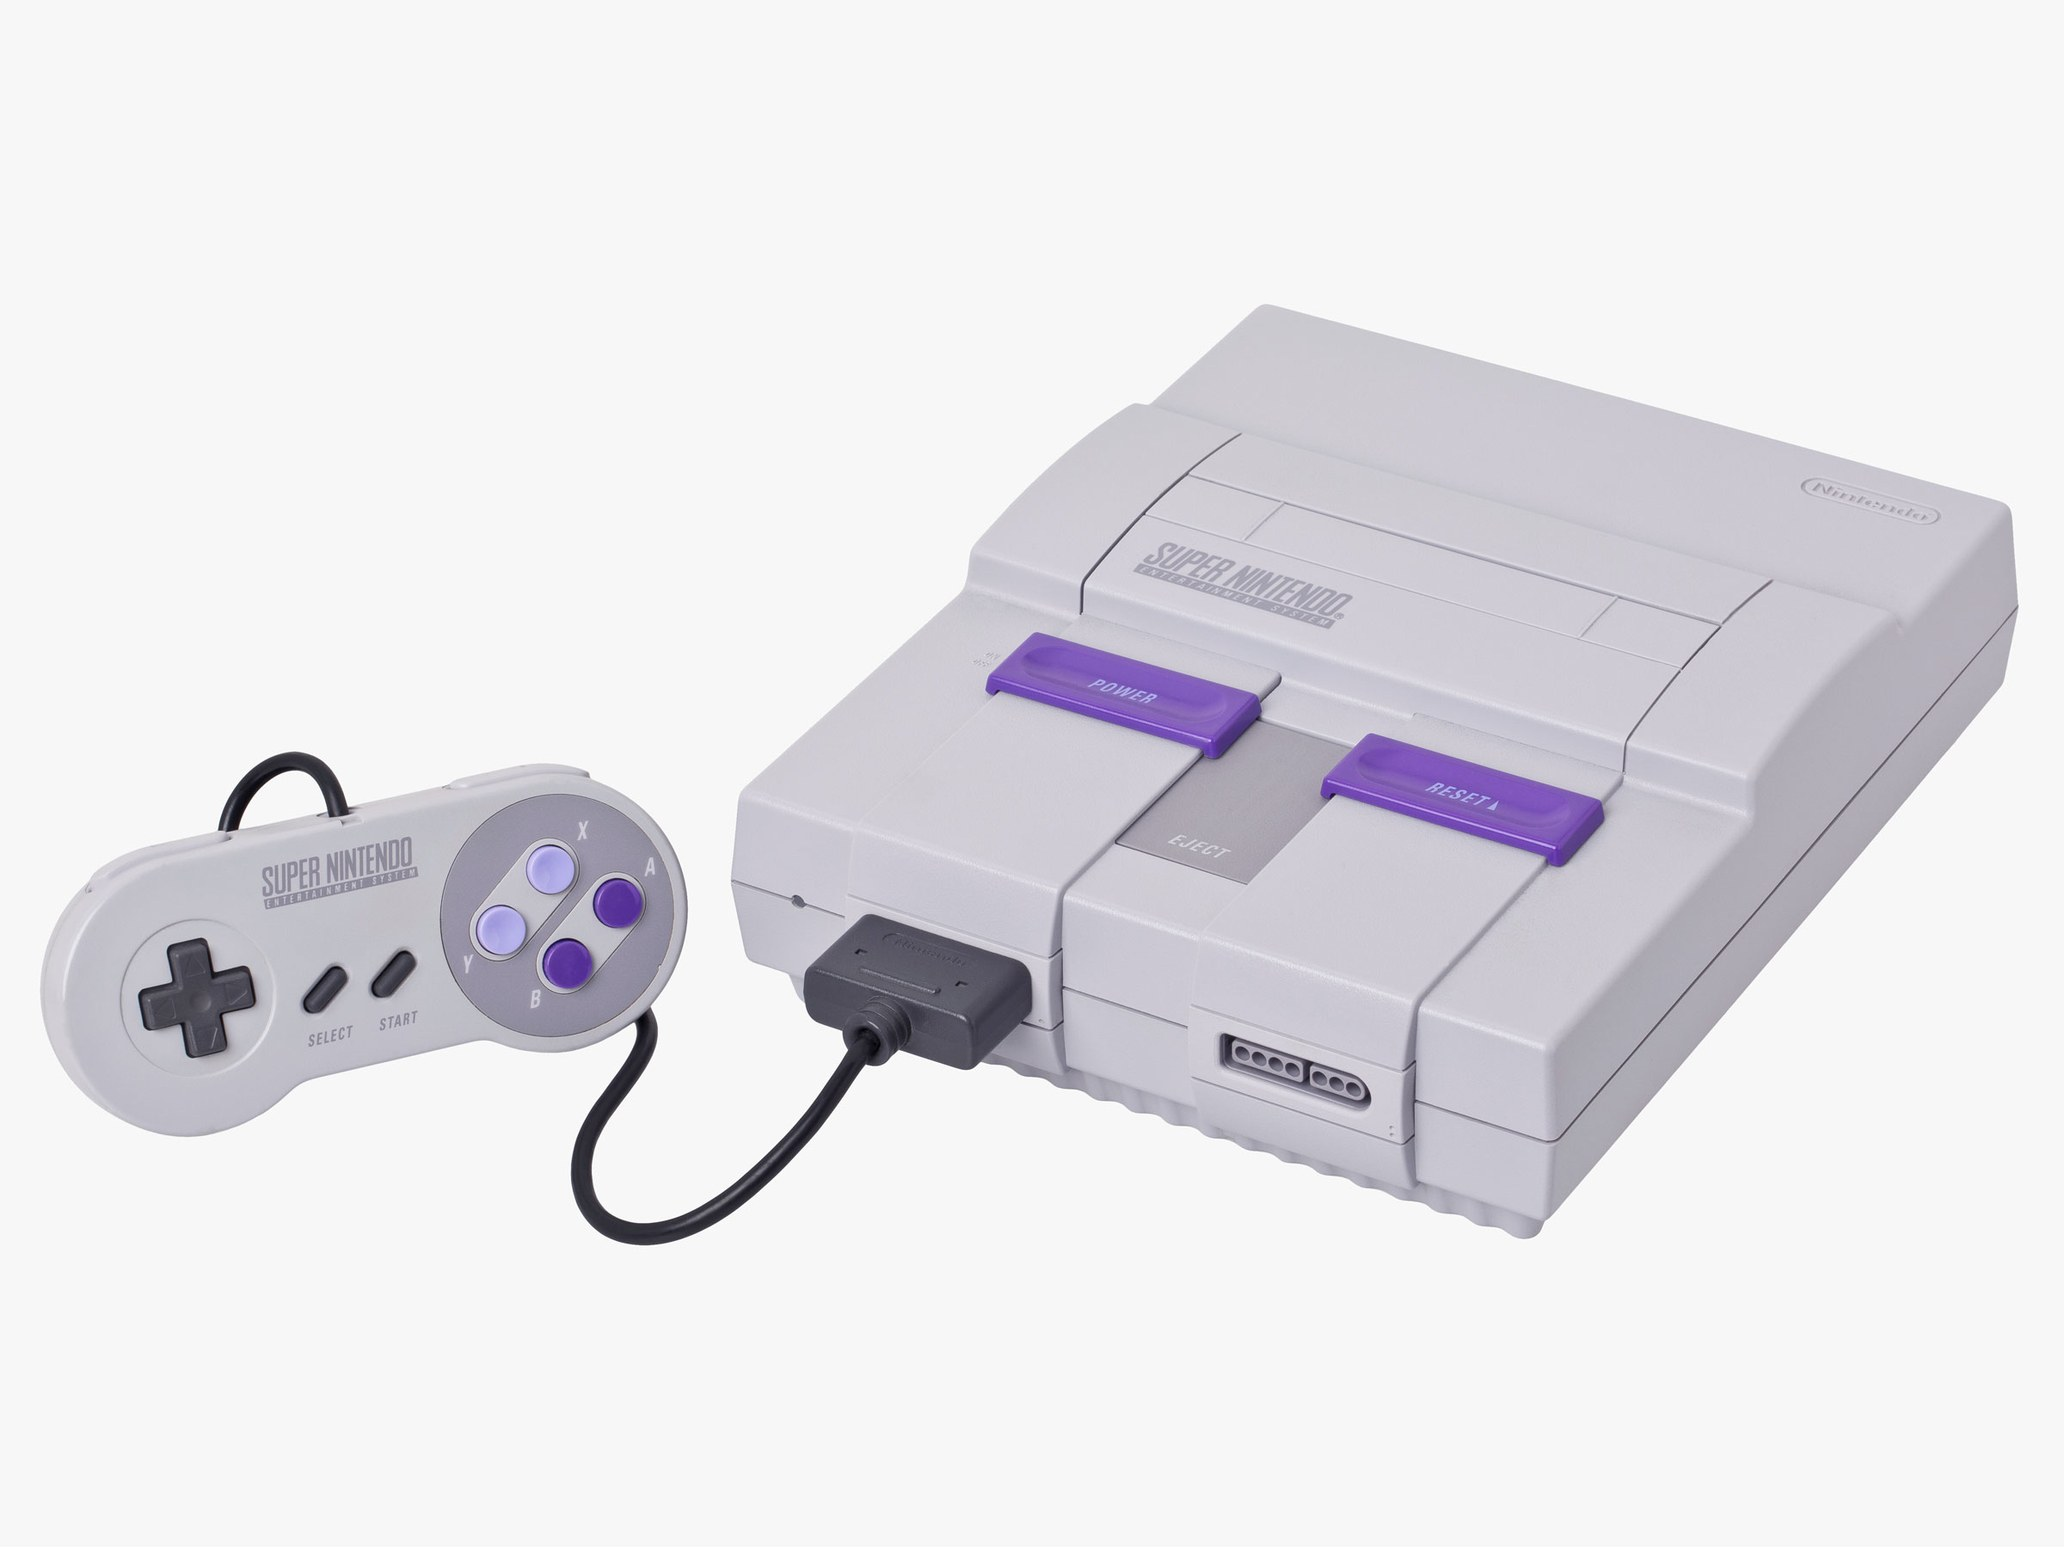 Nintendo Retrospective: The Super Nintendo Entertainment System